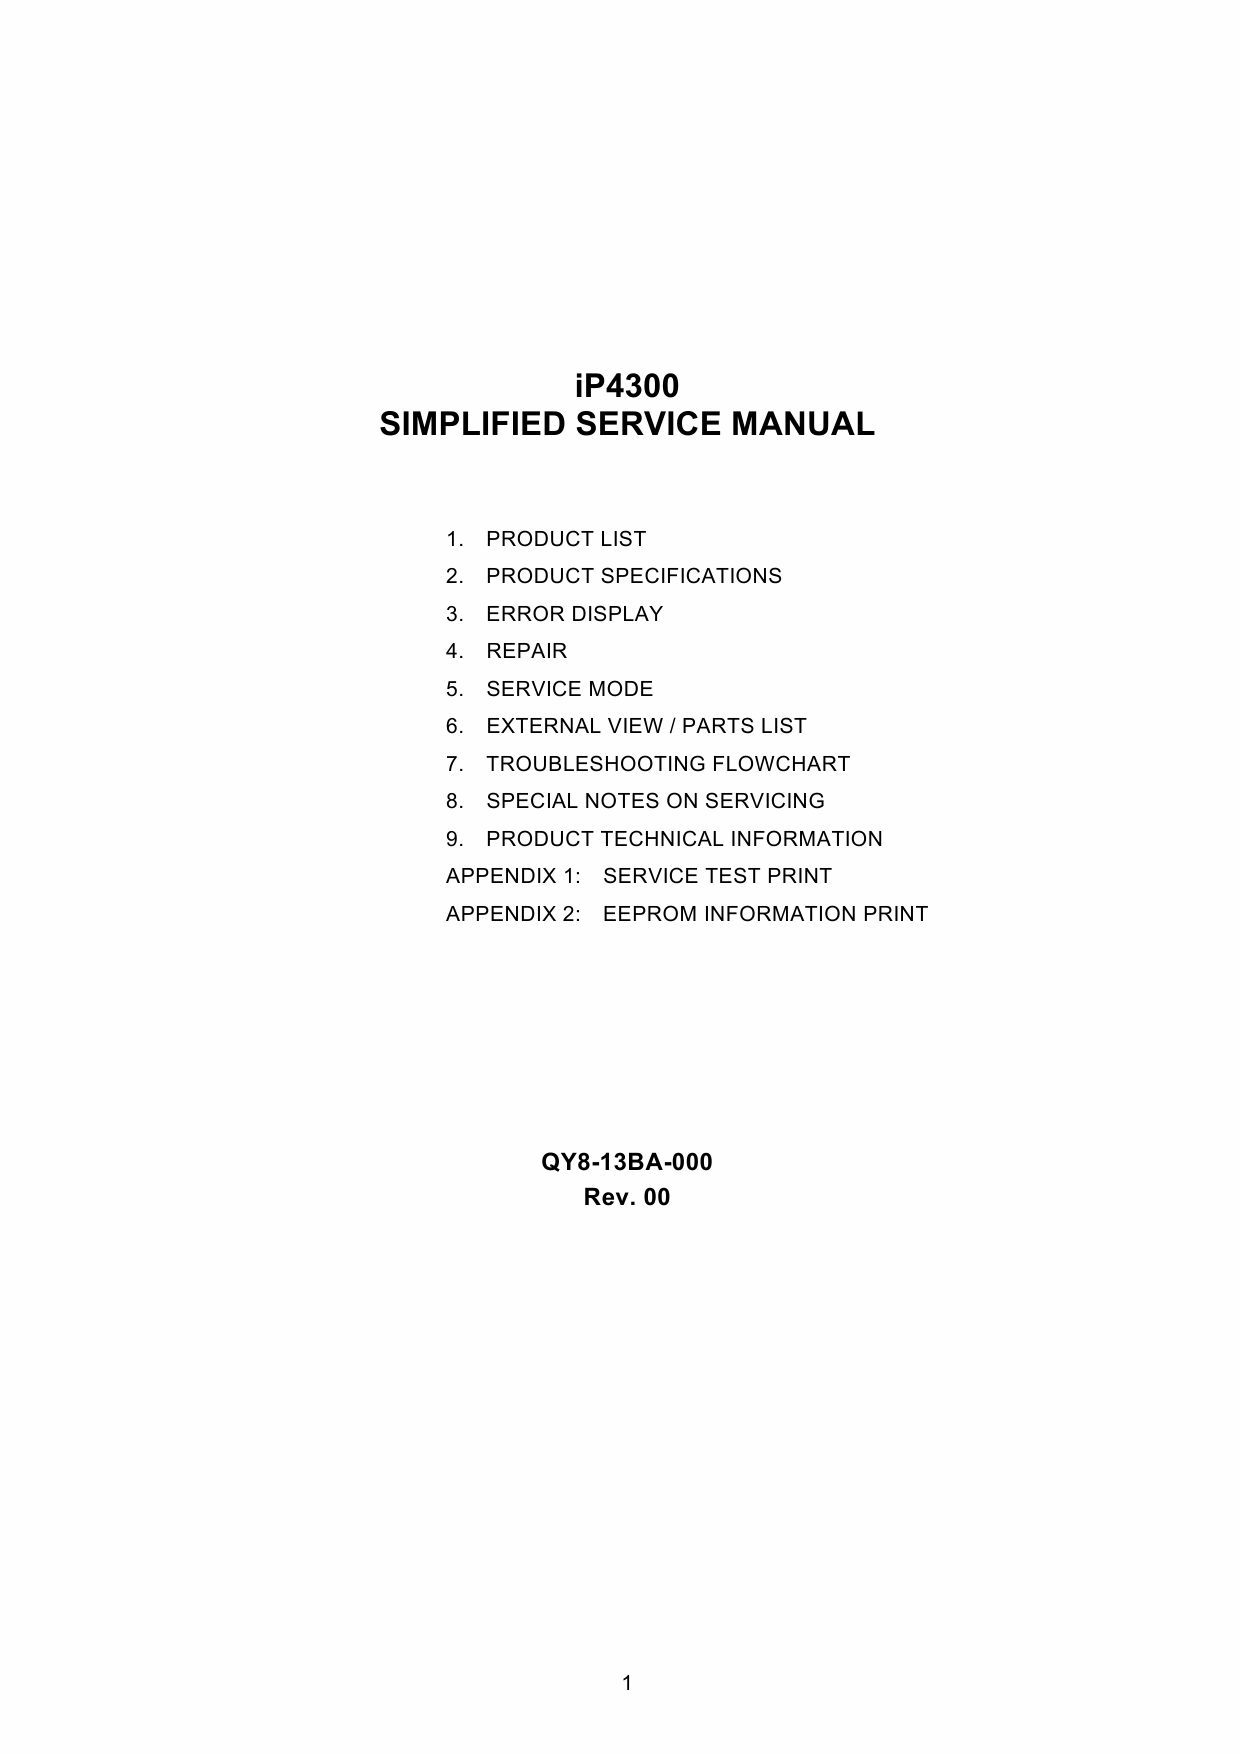 Canon PIXMA iP4300 Parts and Service Manual-1